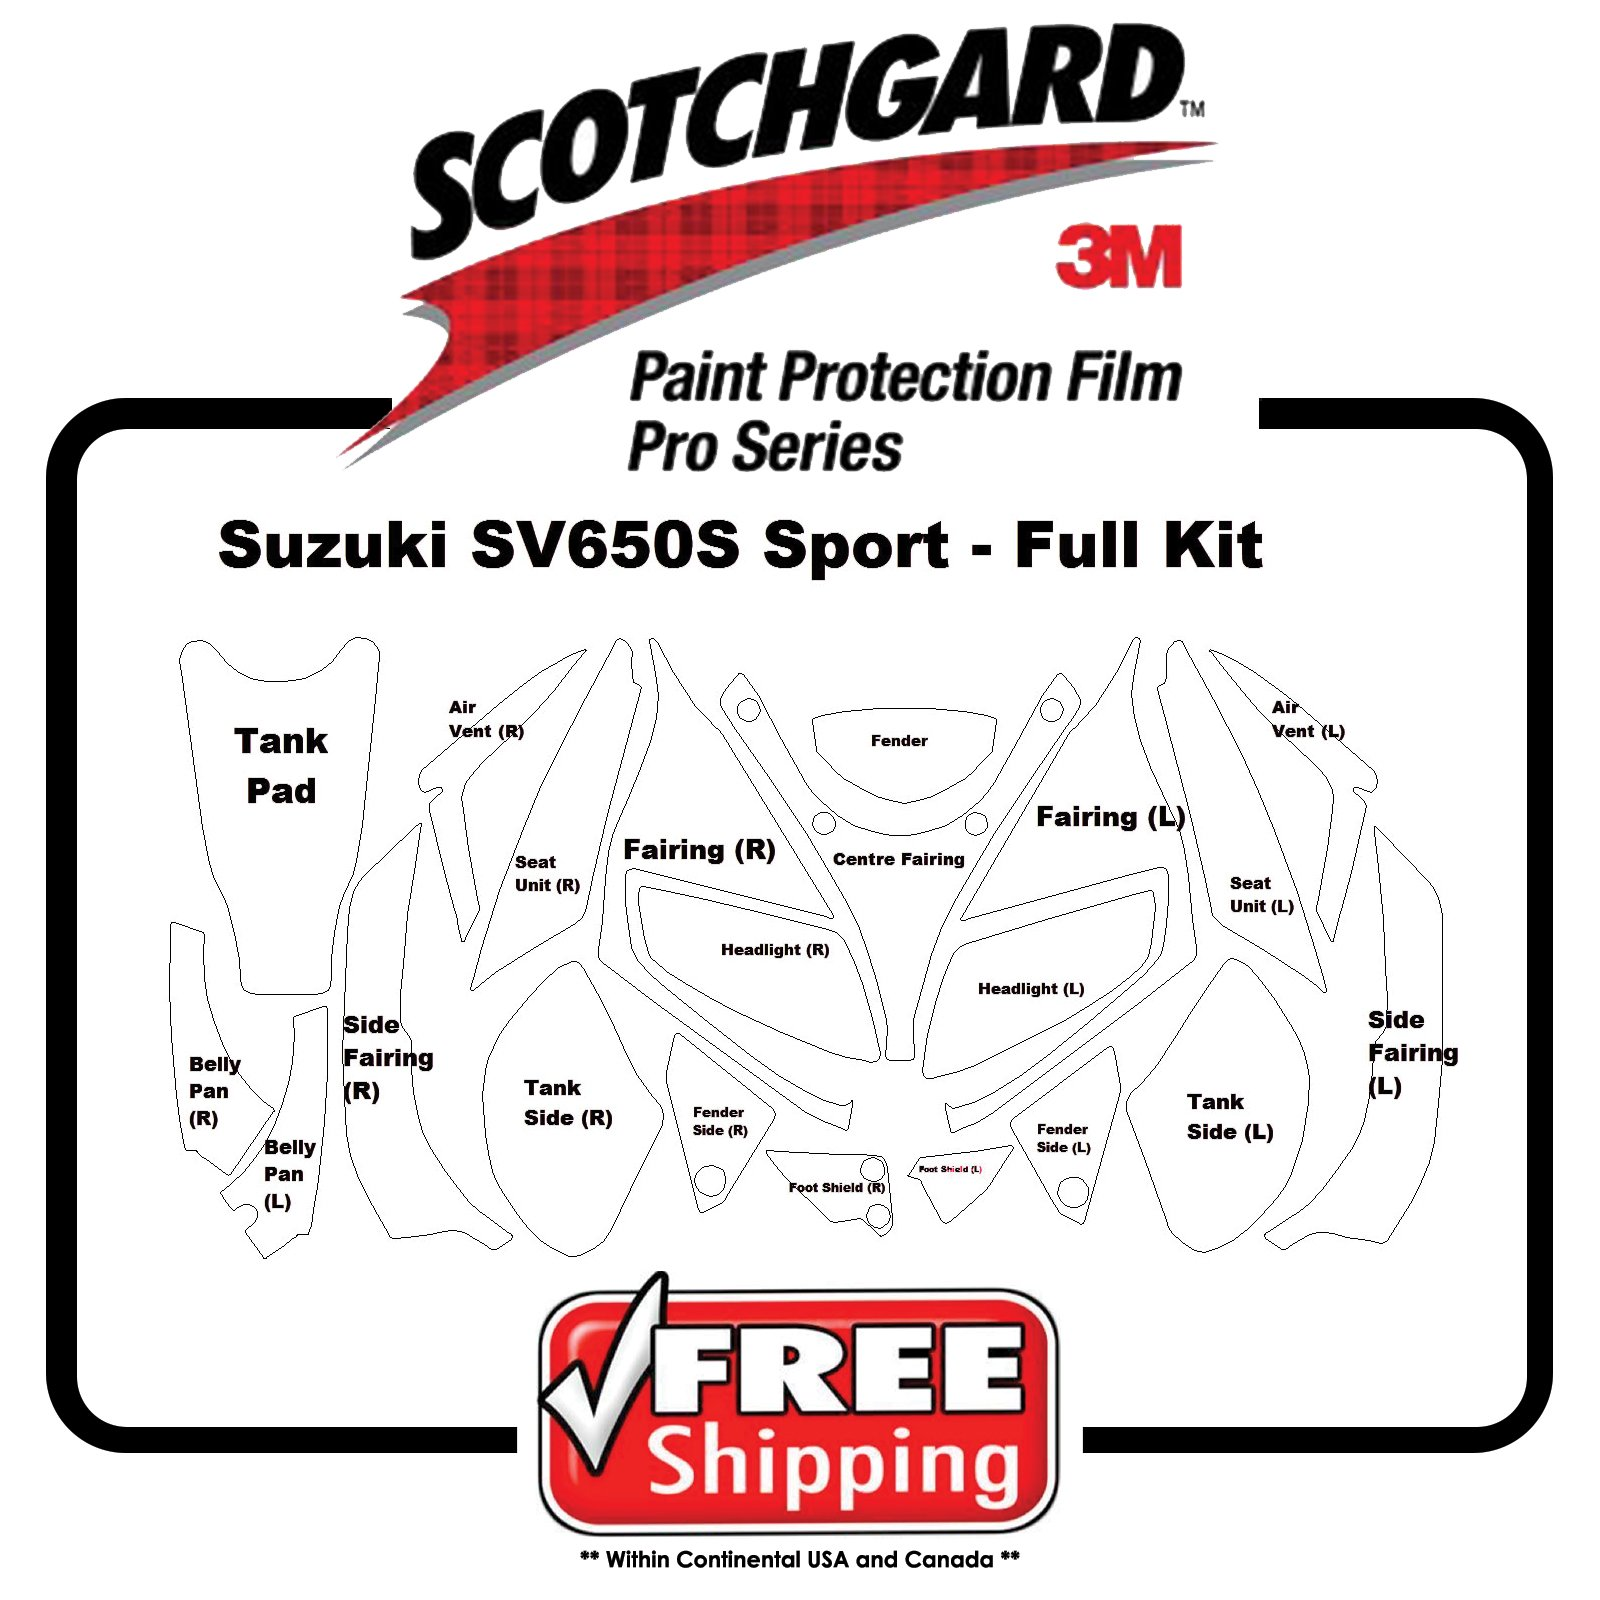 Kit for Suzuki SV 650 S Sport 06 - 3M 948 PRO SERIES Scotchgard Paint Protection by PrintsnPlots